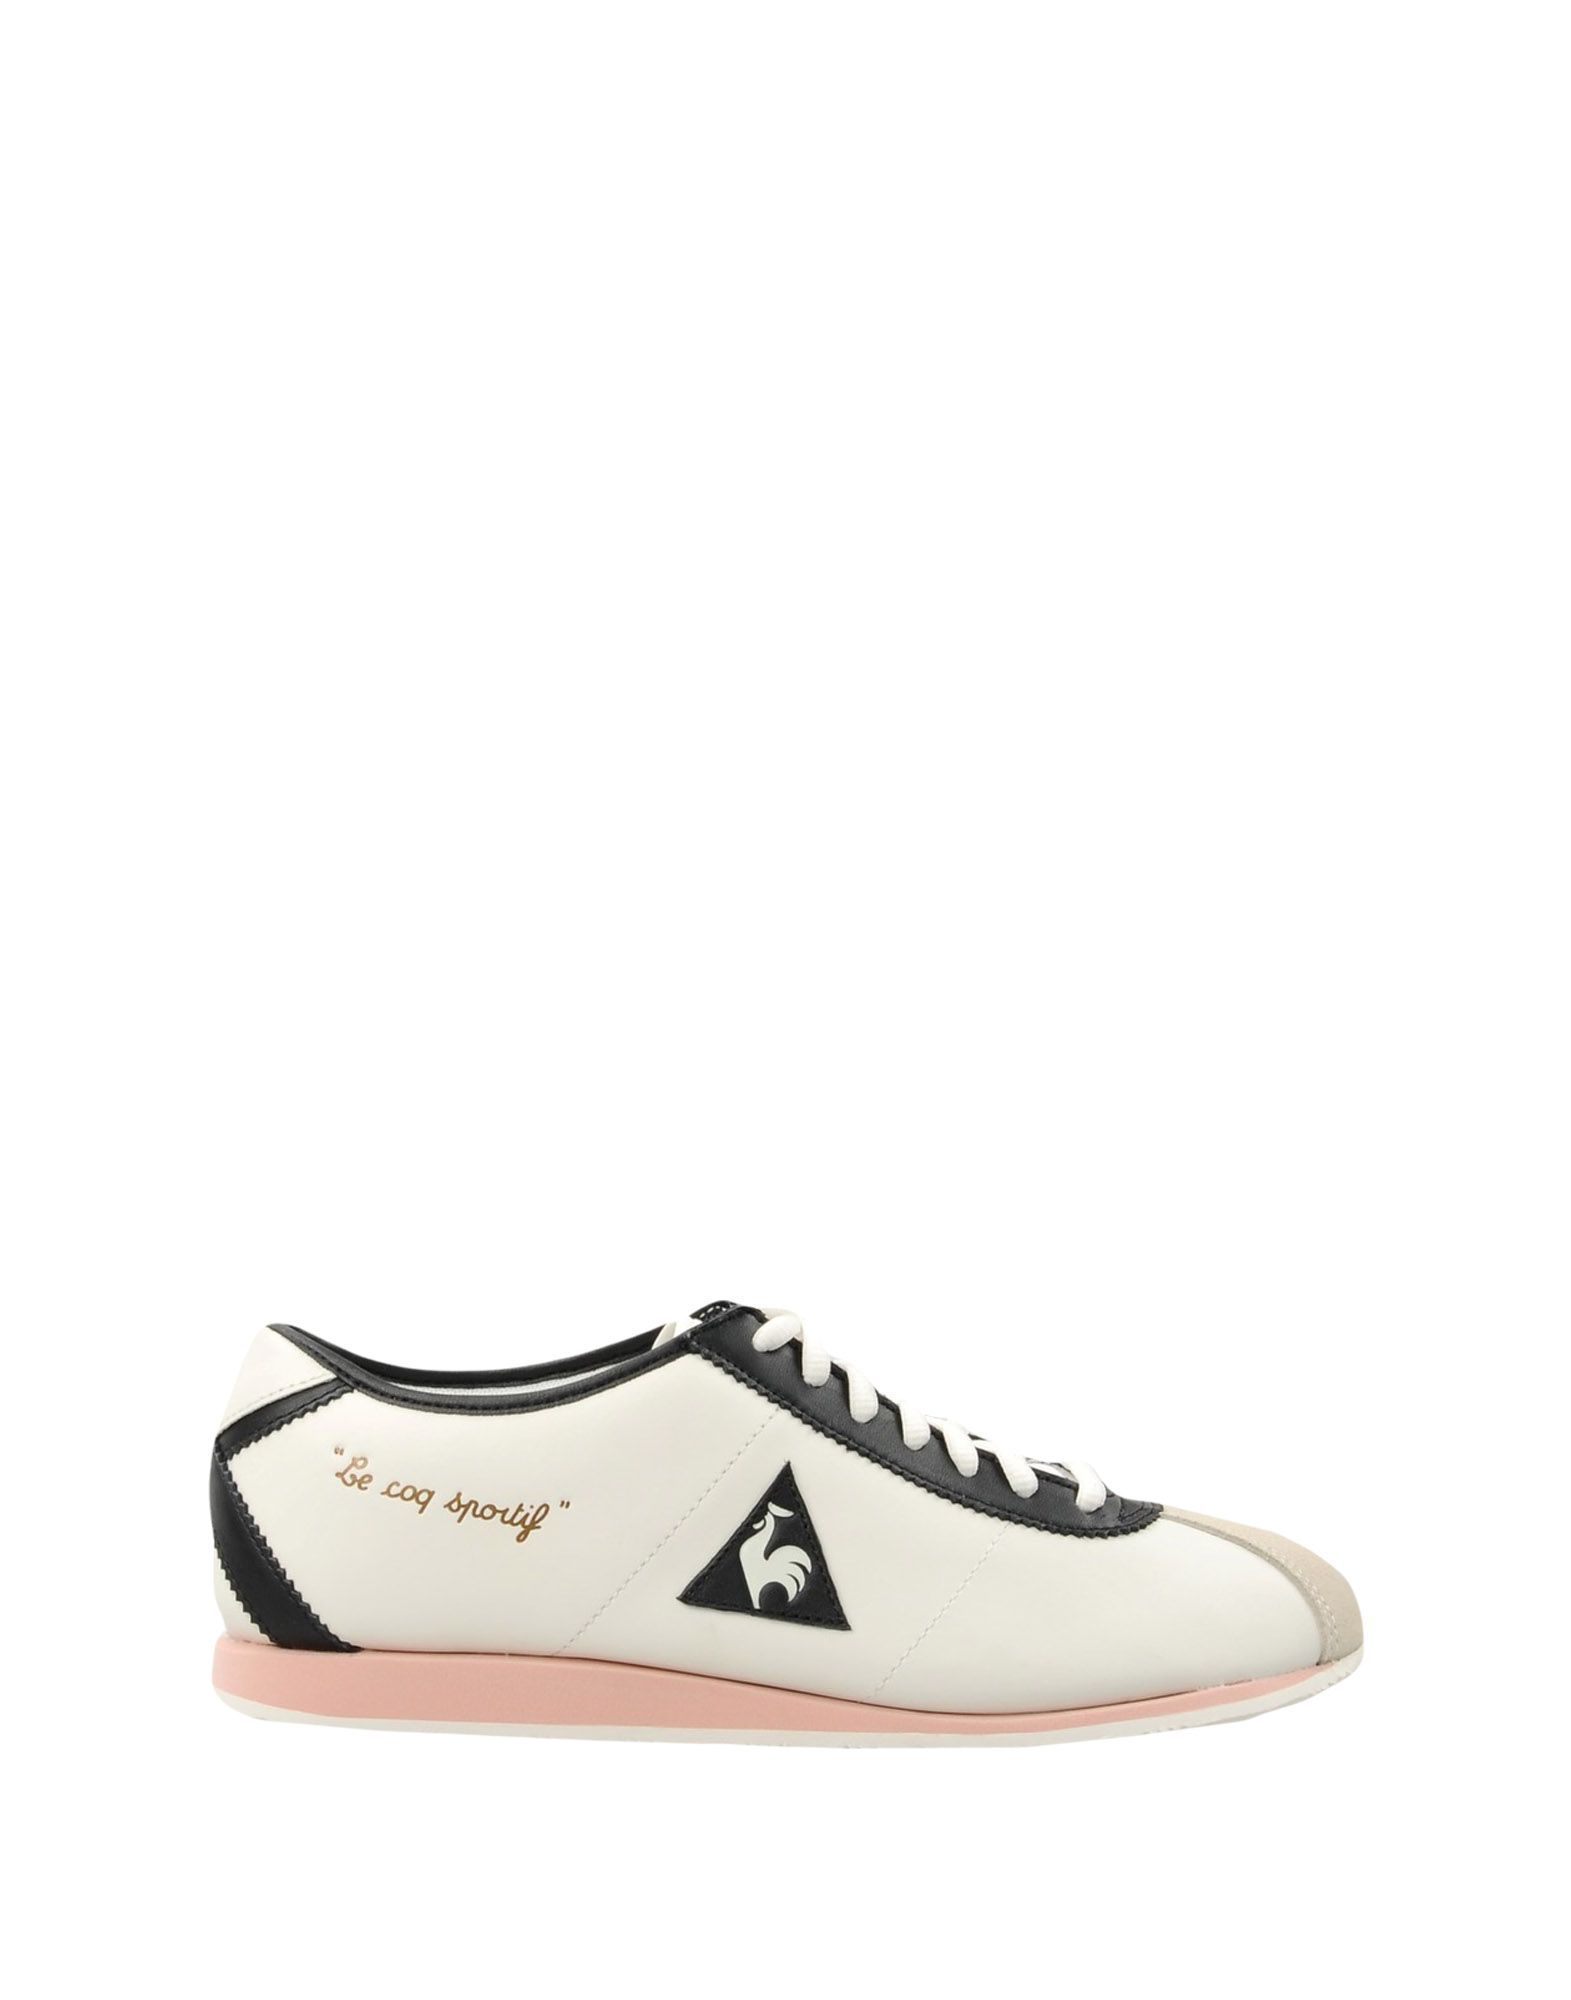 Sneakers Le Coq Sportif  Wendon W Leather - Femme - Sneakers Le Coq Sportif sur